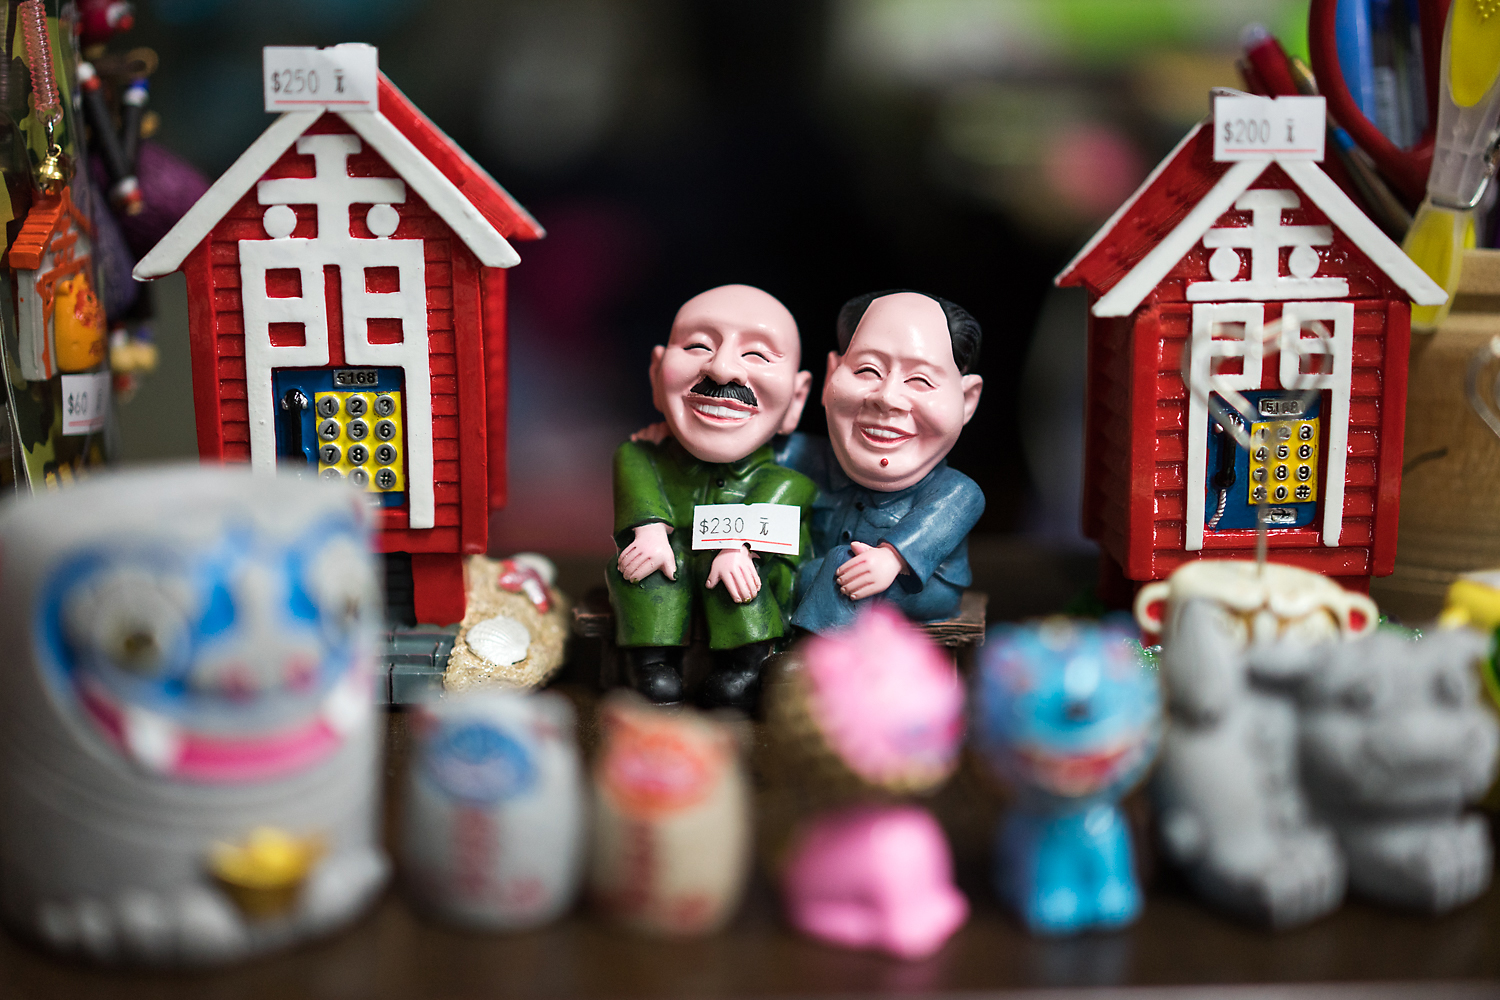 A souvenir in a shop in Little Kinmen humorously depicts Chiang Kai-shek and Mao Zedong sitting together, Mao's arm around Chiang. The two leaders led their respective sides through a bloody civil war, culminating in the battle over Kinmen in October 1949.